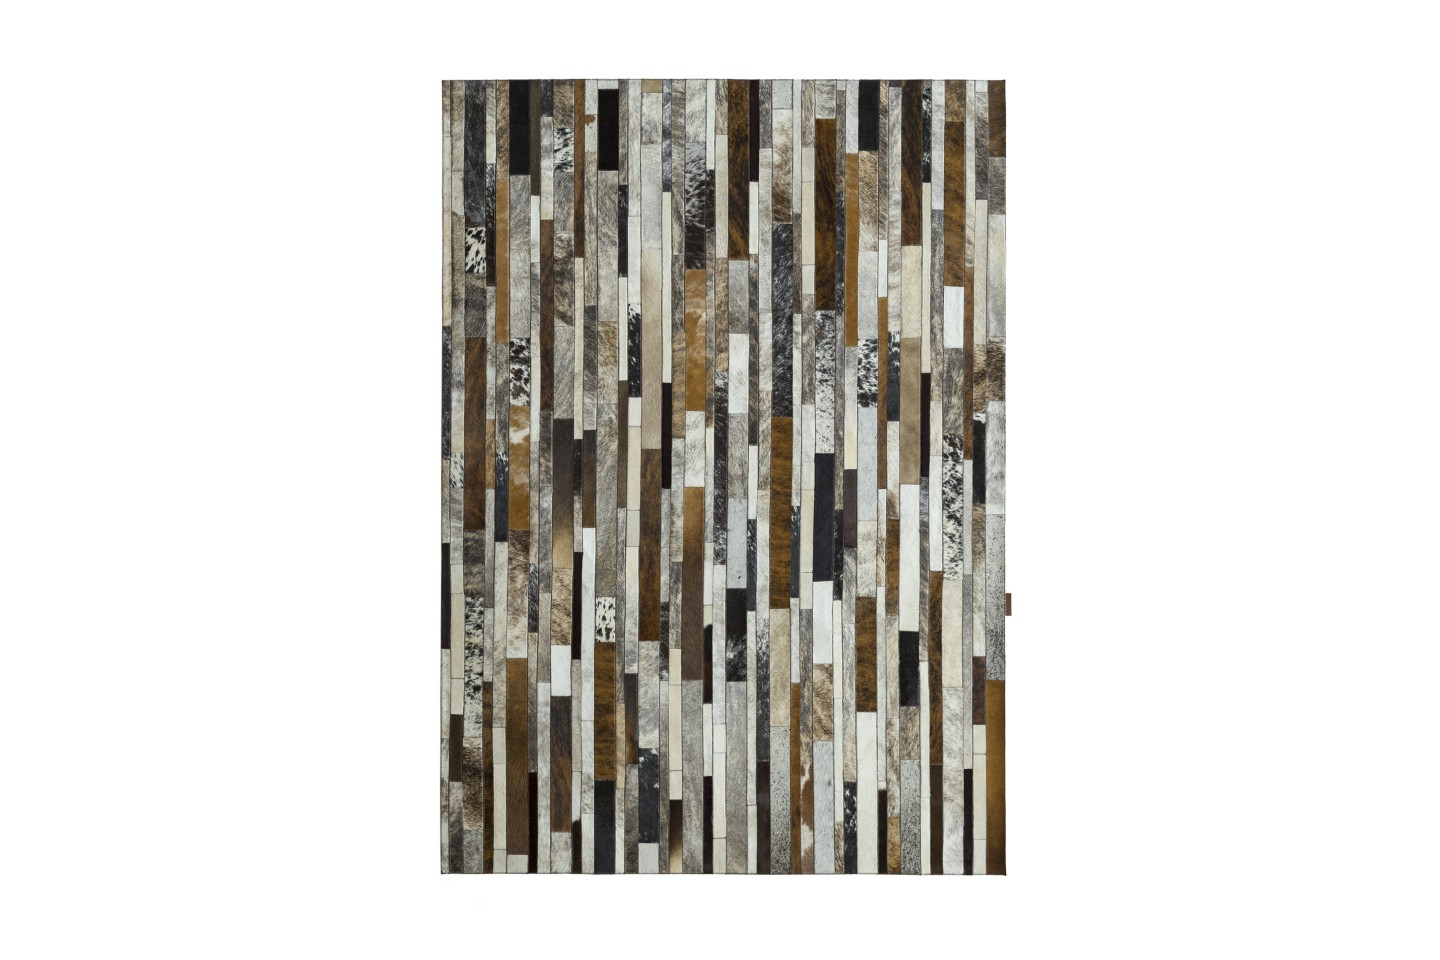 Lederteppich Grau Patchwork Cowhide Rug Stripes Grey Ivory Brown Fur Home